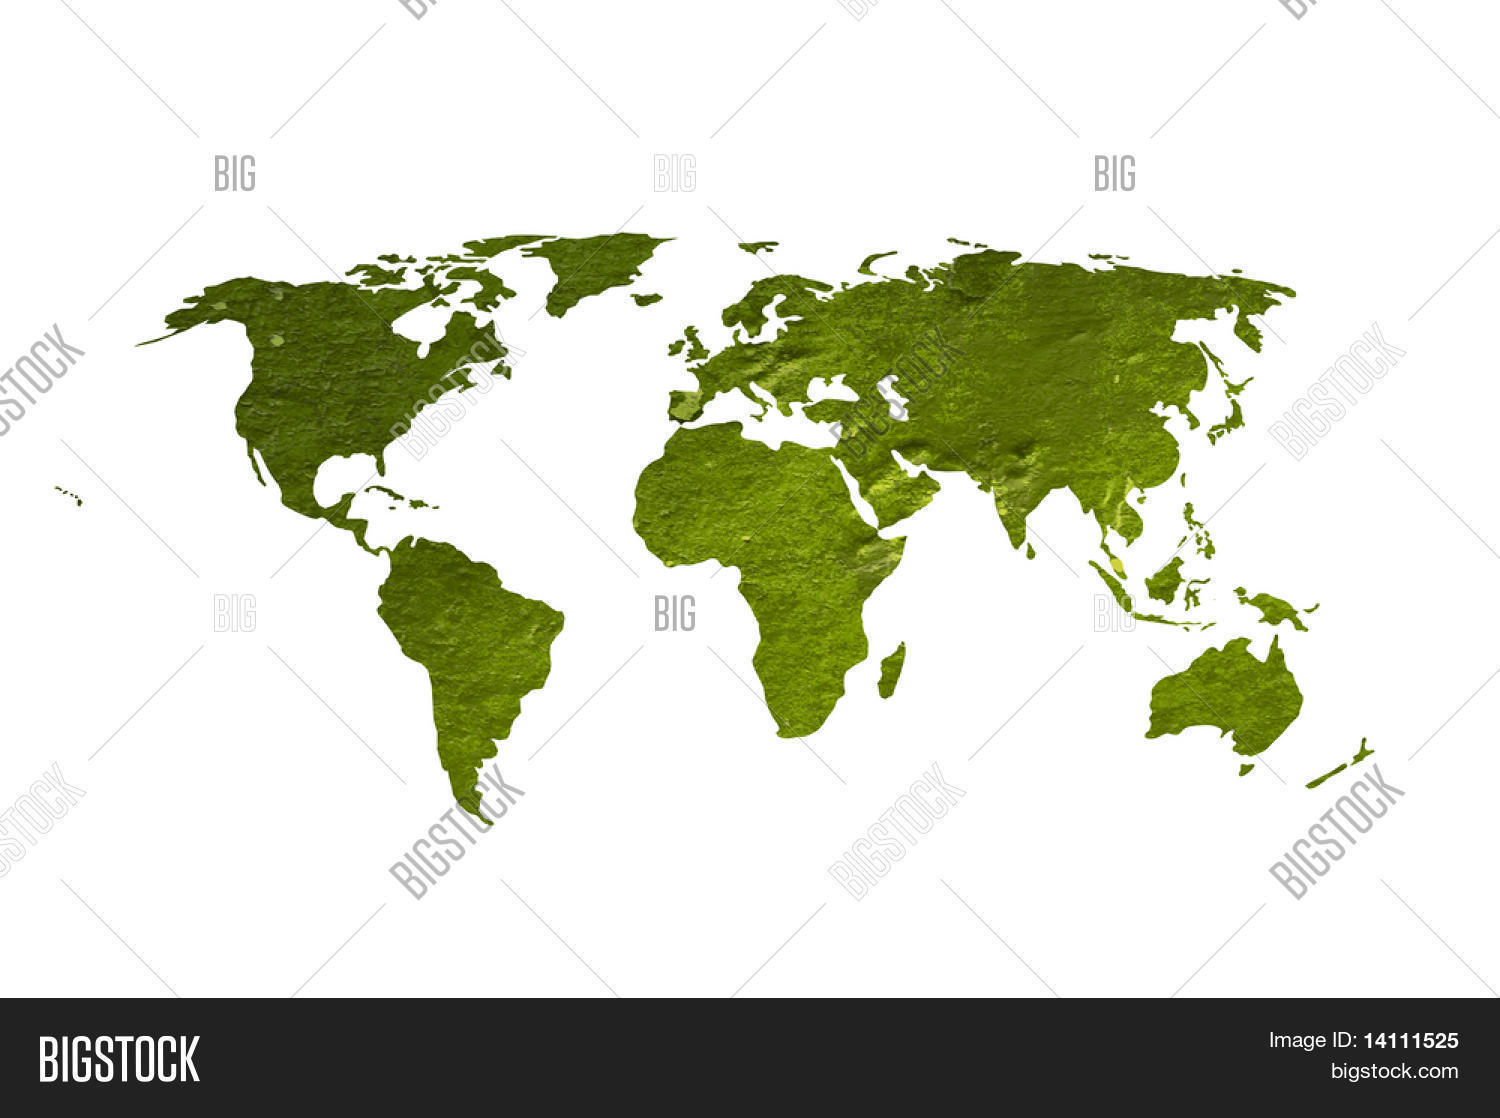 World Map Textures Image & Photo (Free Trial) | Bigstock on